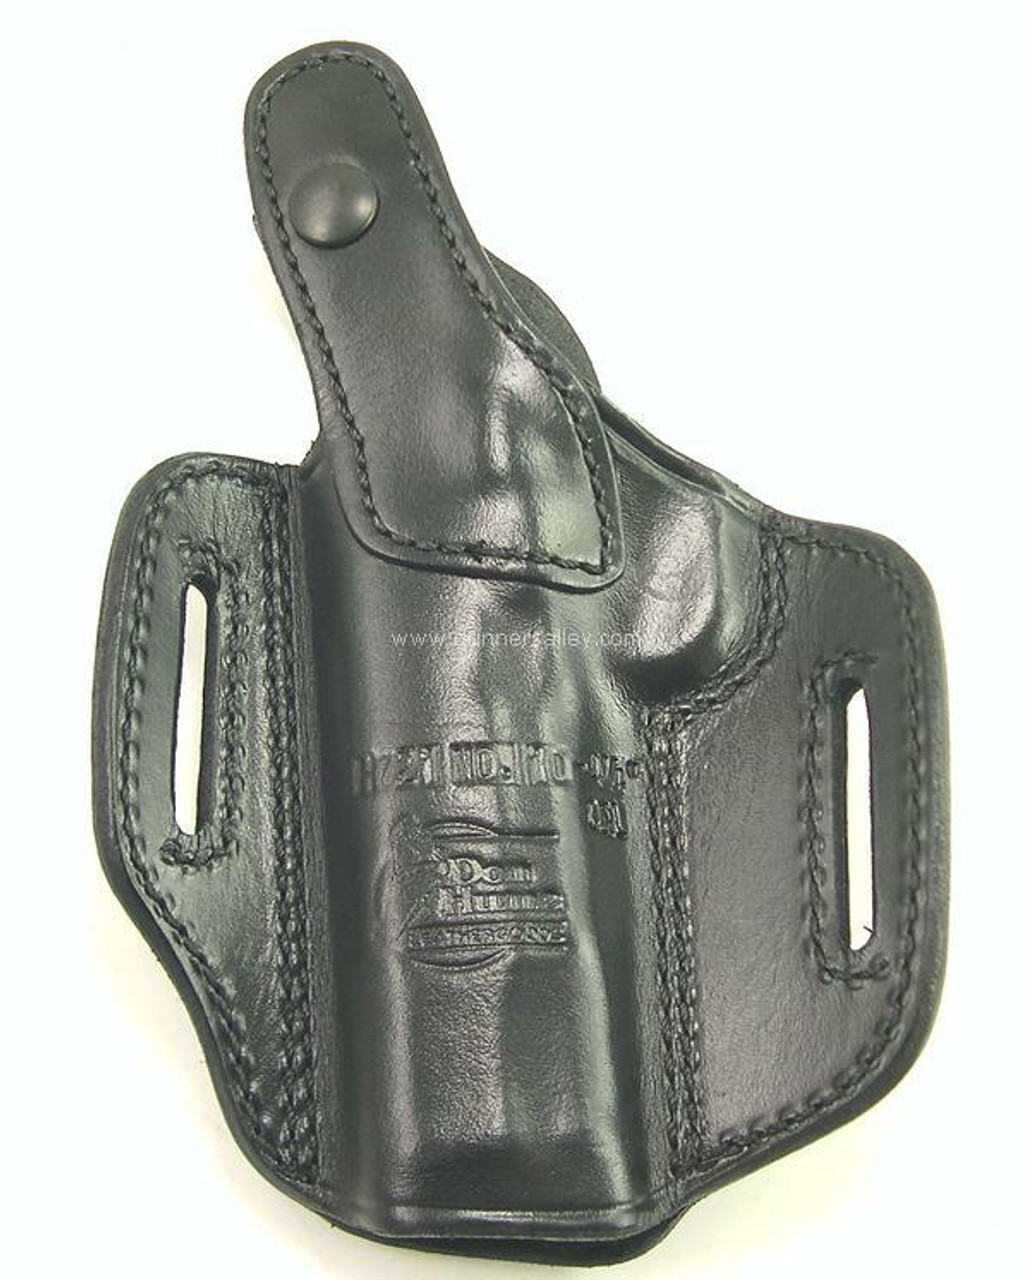 Shown in Black for a 1911 Commander (4.25 inch barrel) - rear view